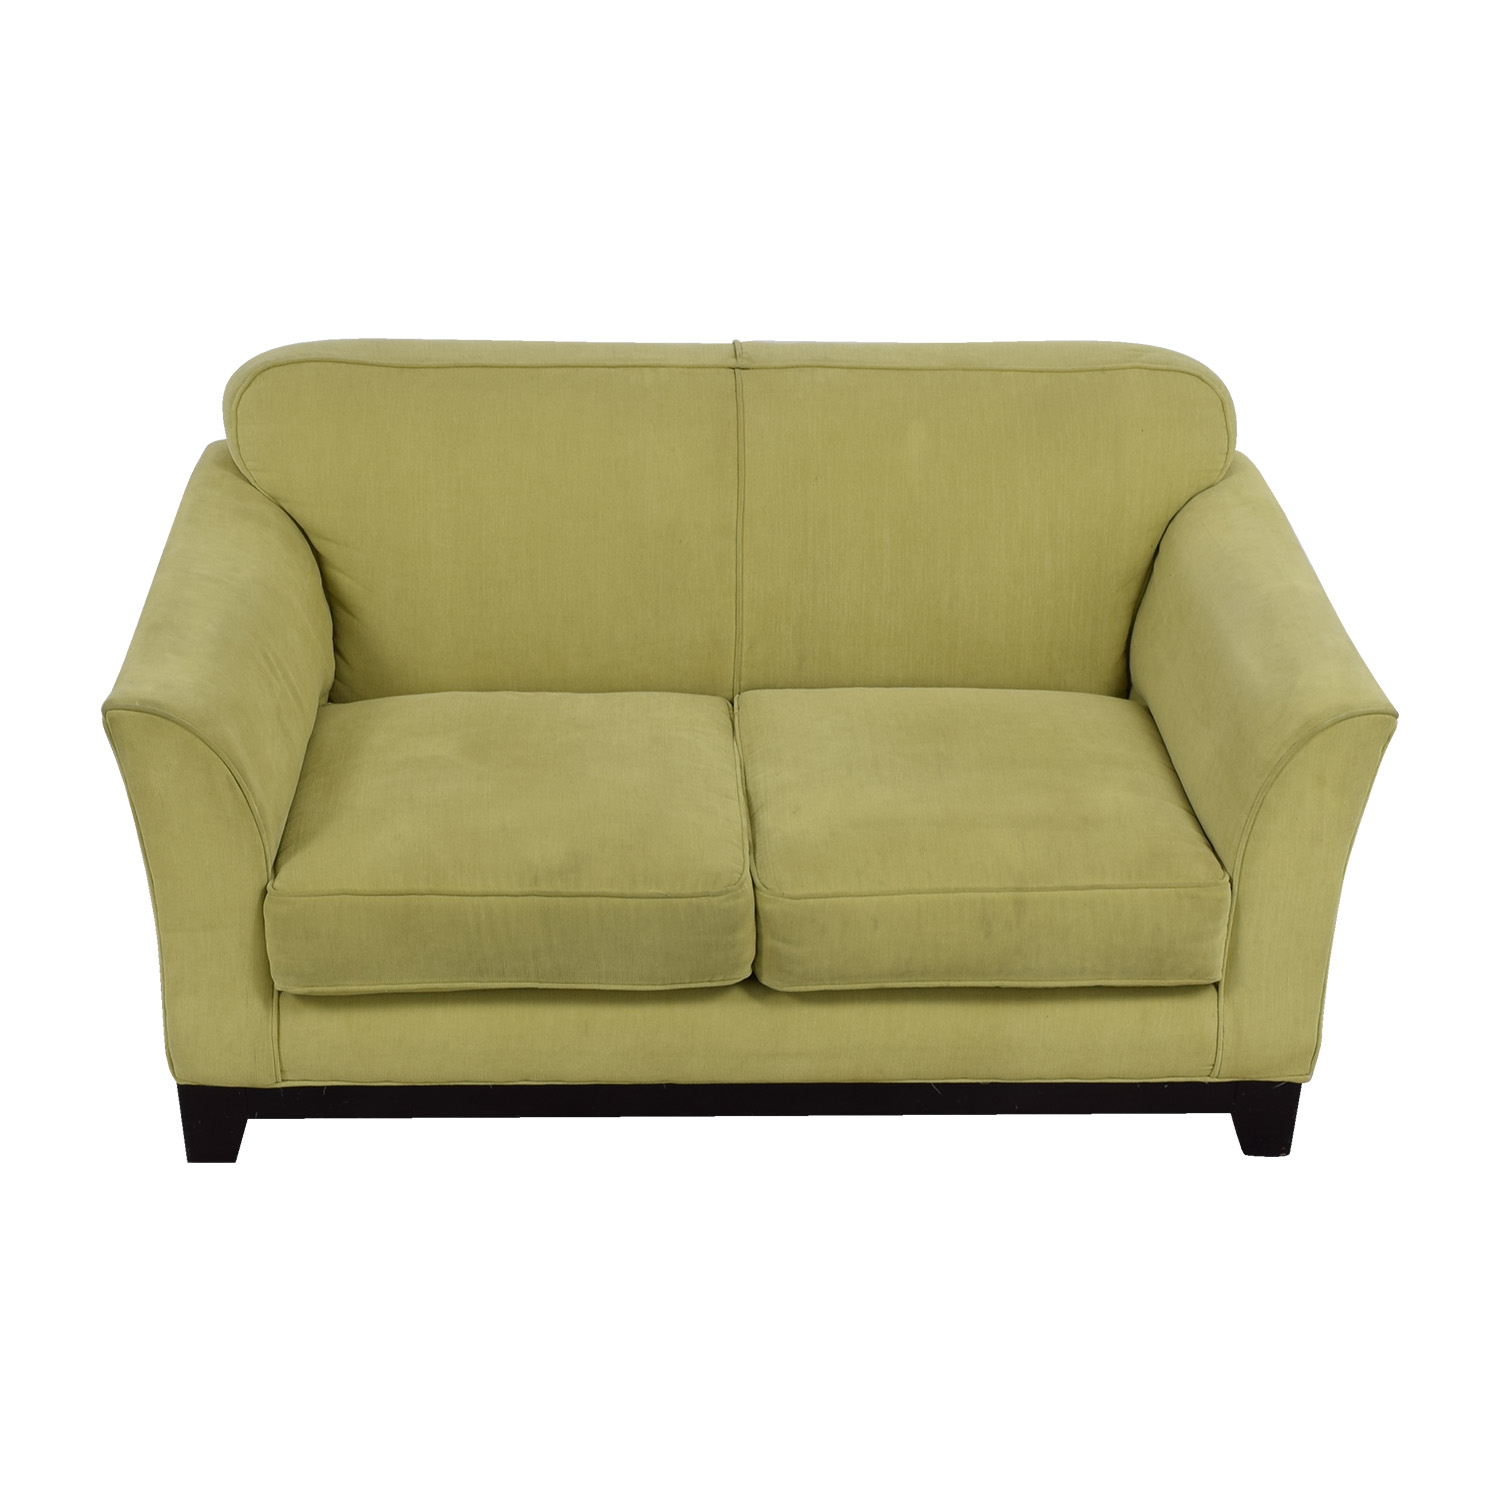 Moda Chartreuse Green Two-Cushion Loveseat sale